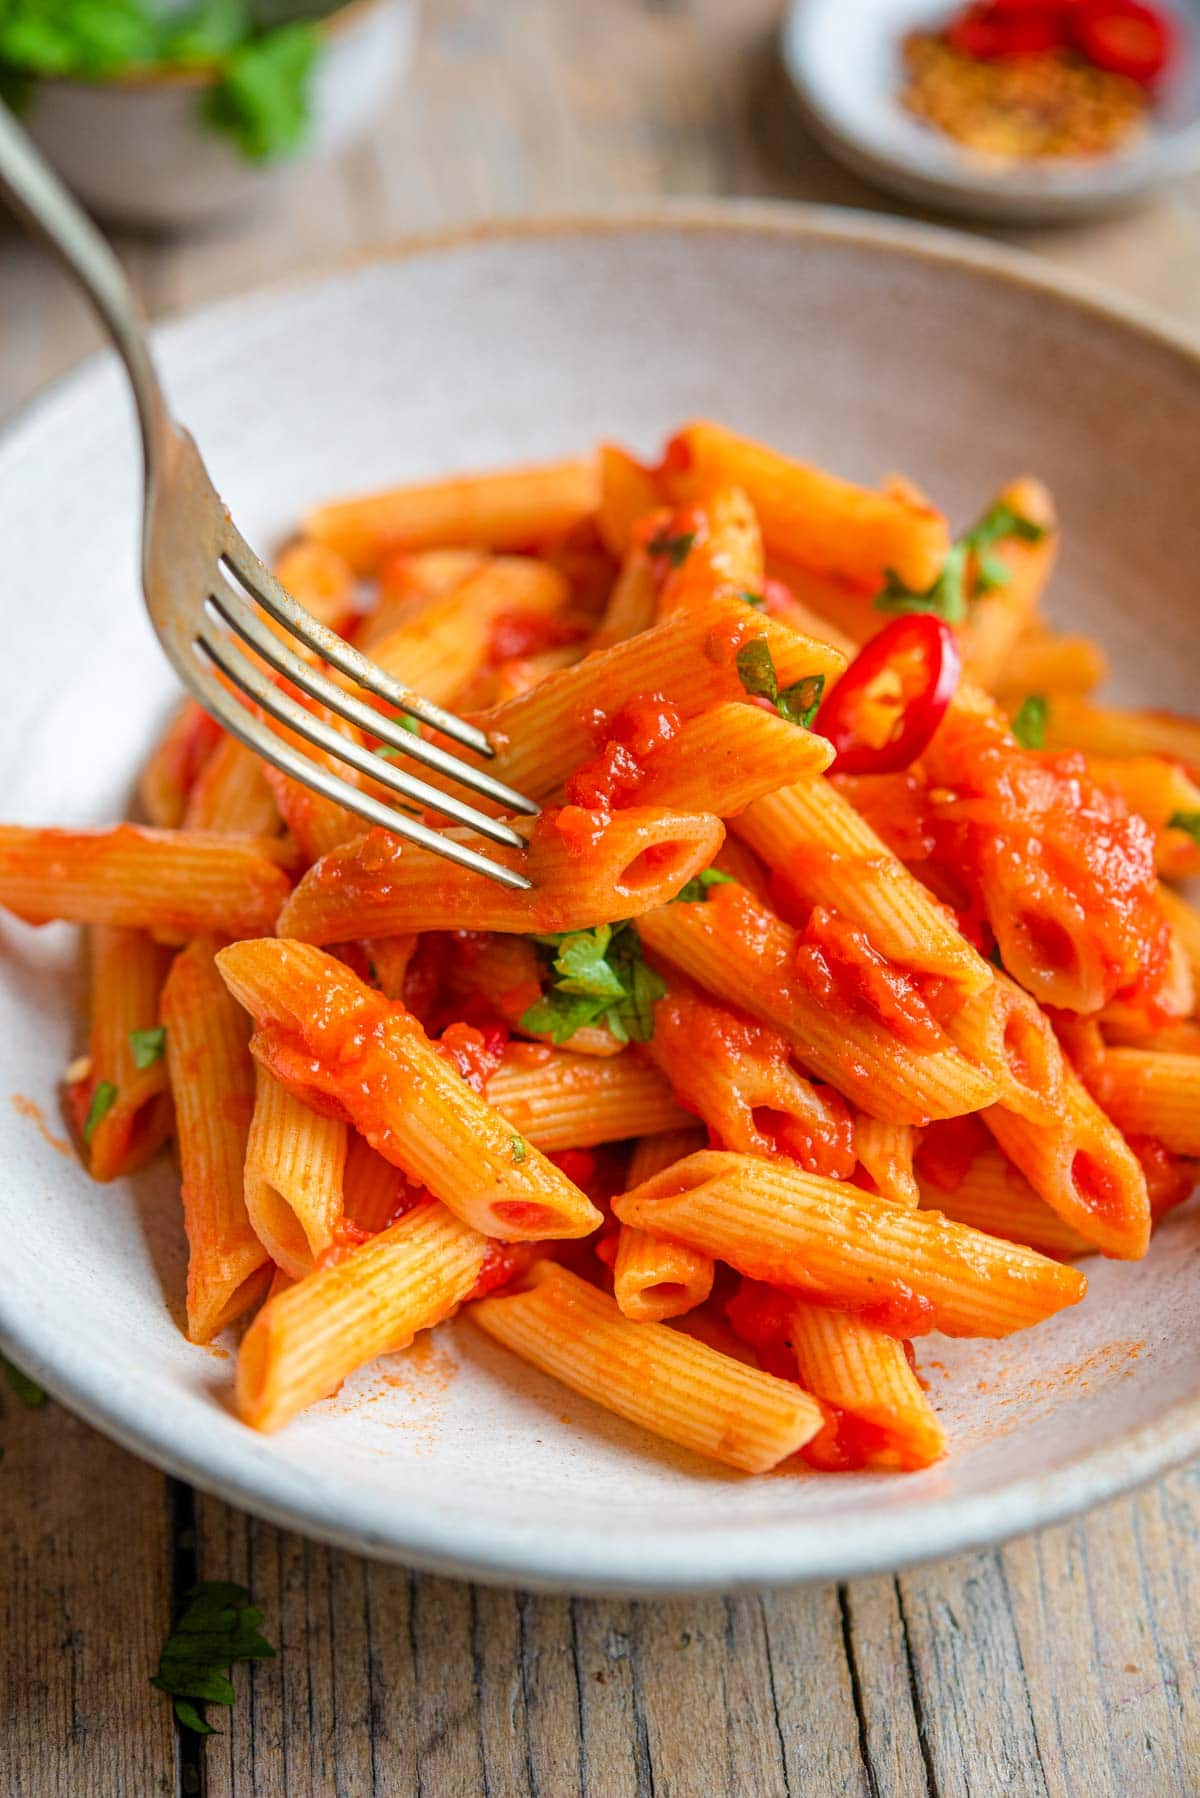 A close up of a fork picking up penne pasta from a bowl